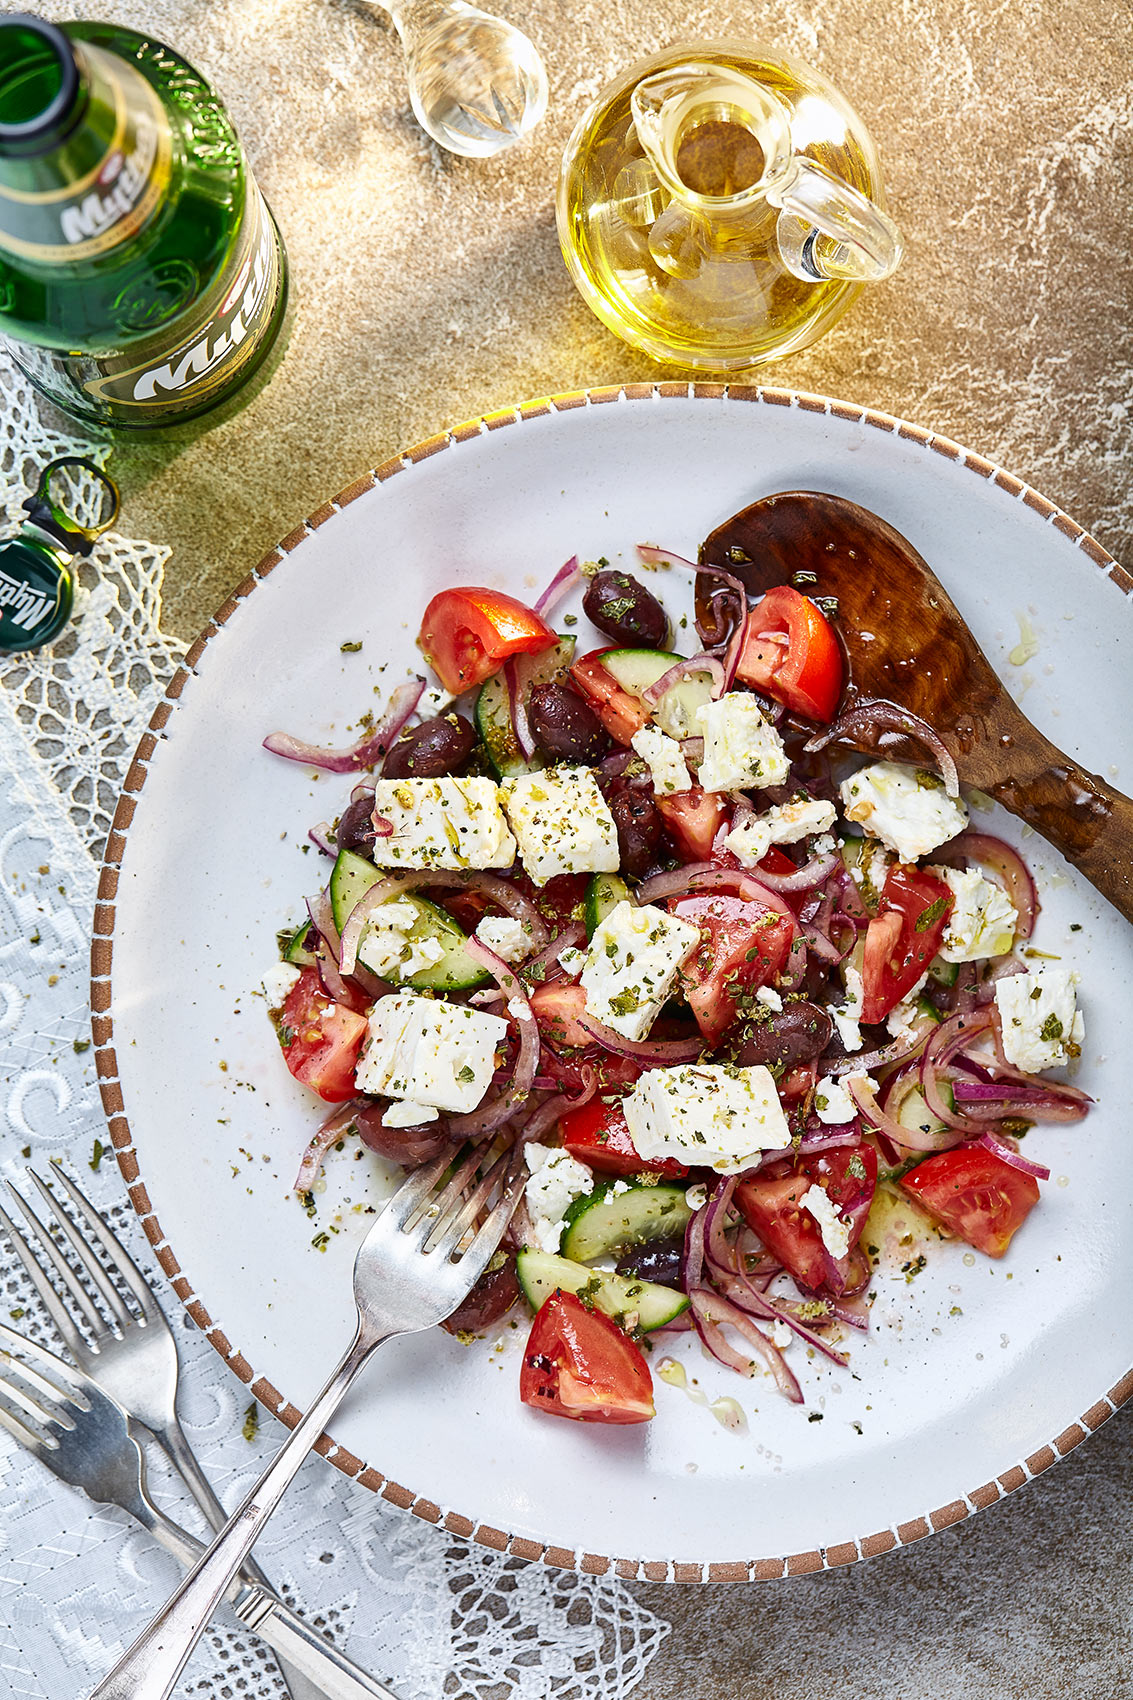 Greek Salad & bottle of Mythos Beer, food photographer Edinburgh